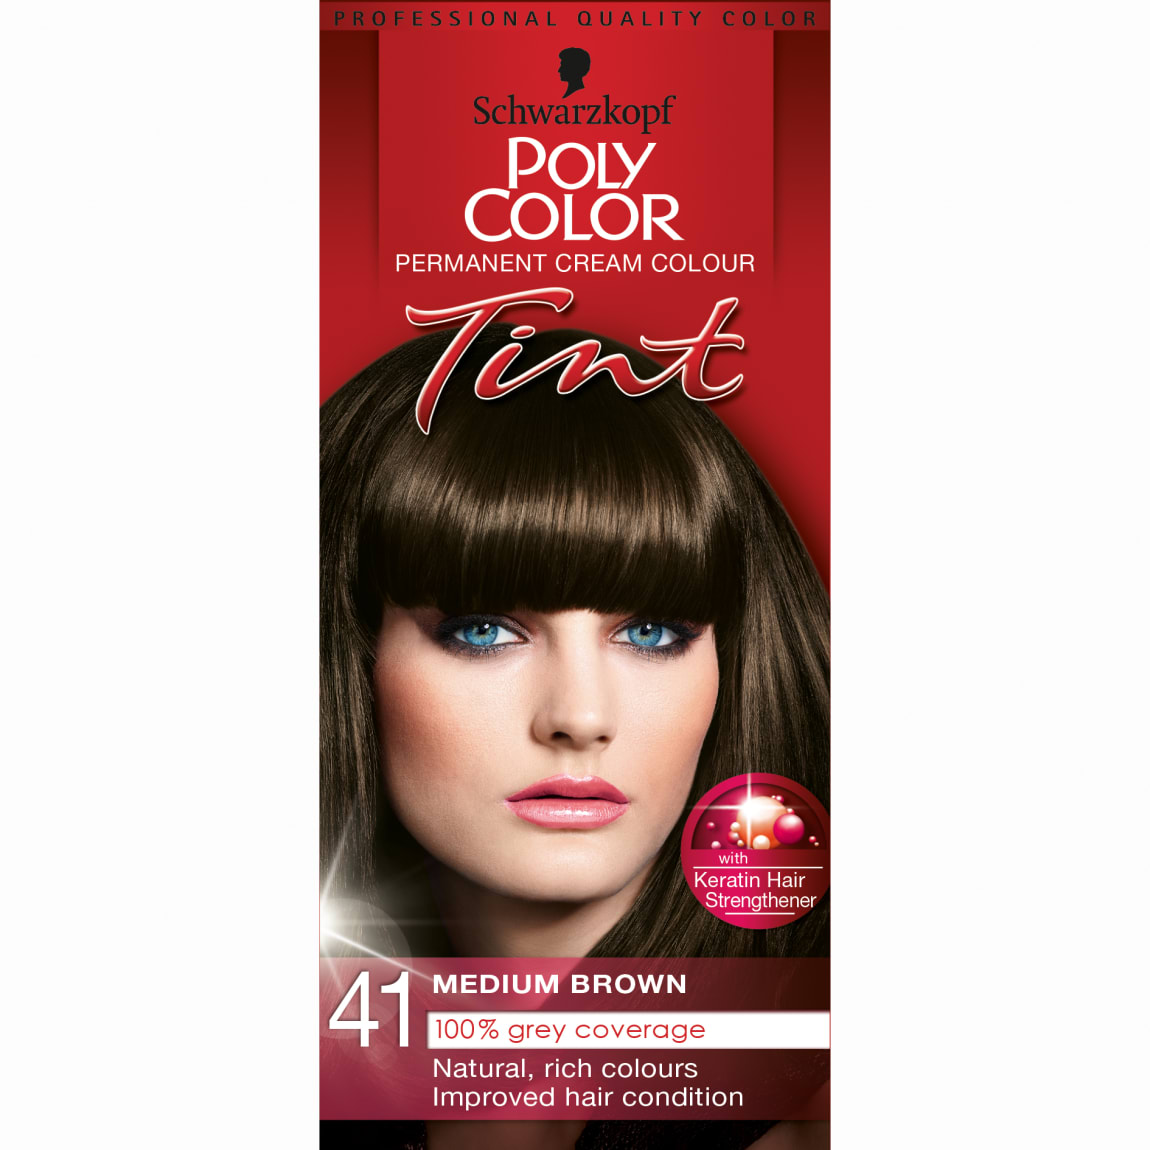 Schwarzkopf Poly Colour Tint - Medium Brown